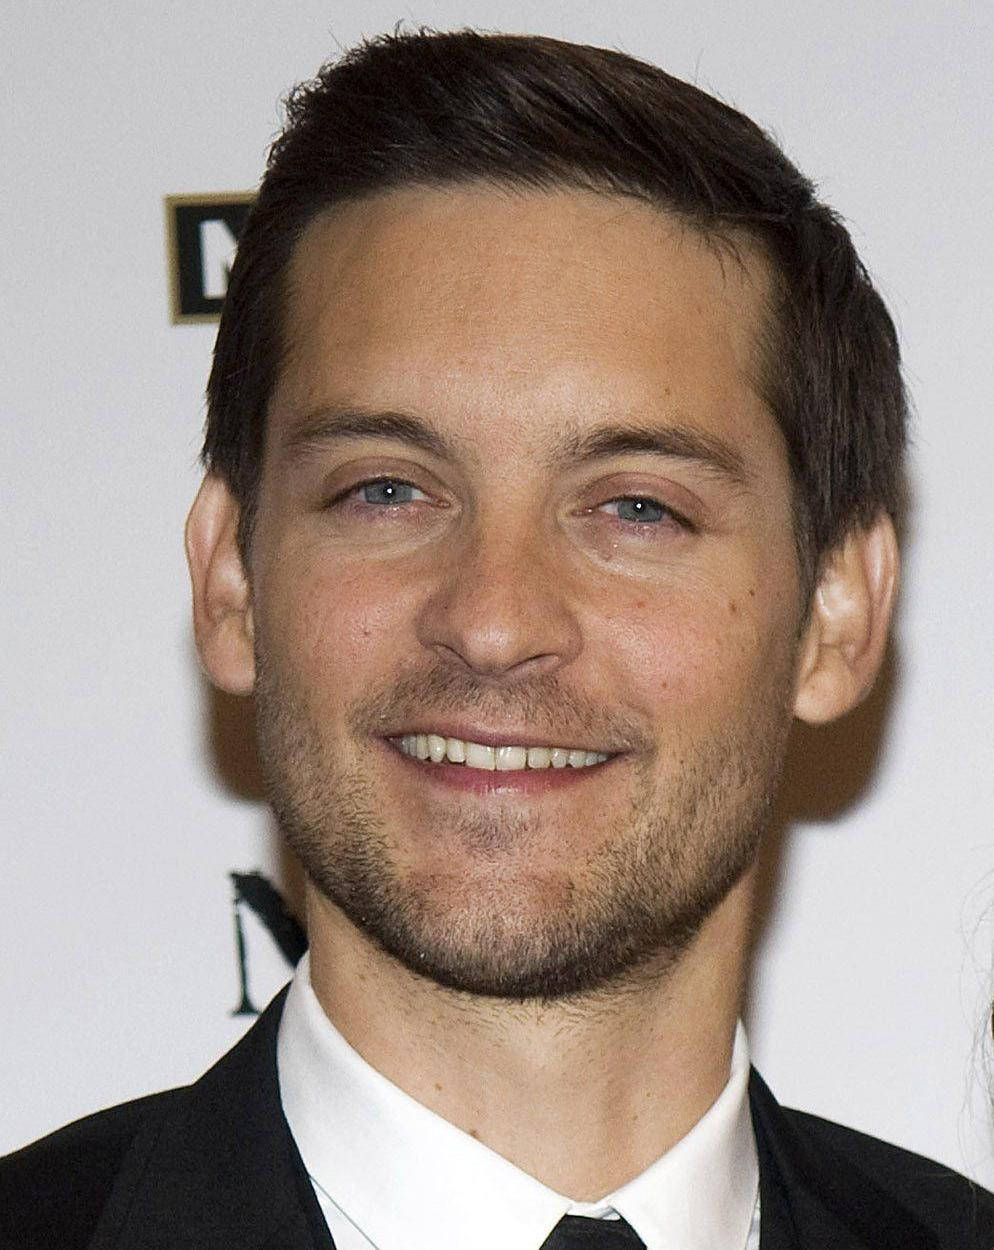 The 42-year old son of father Vincent Maguire and mother Wendy Brown, 170 cm tall Tobey Maguire in 2018 photo